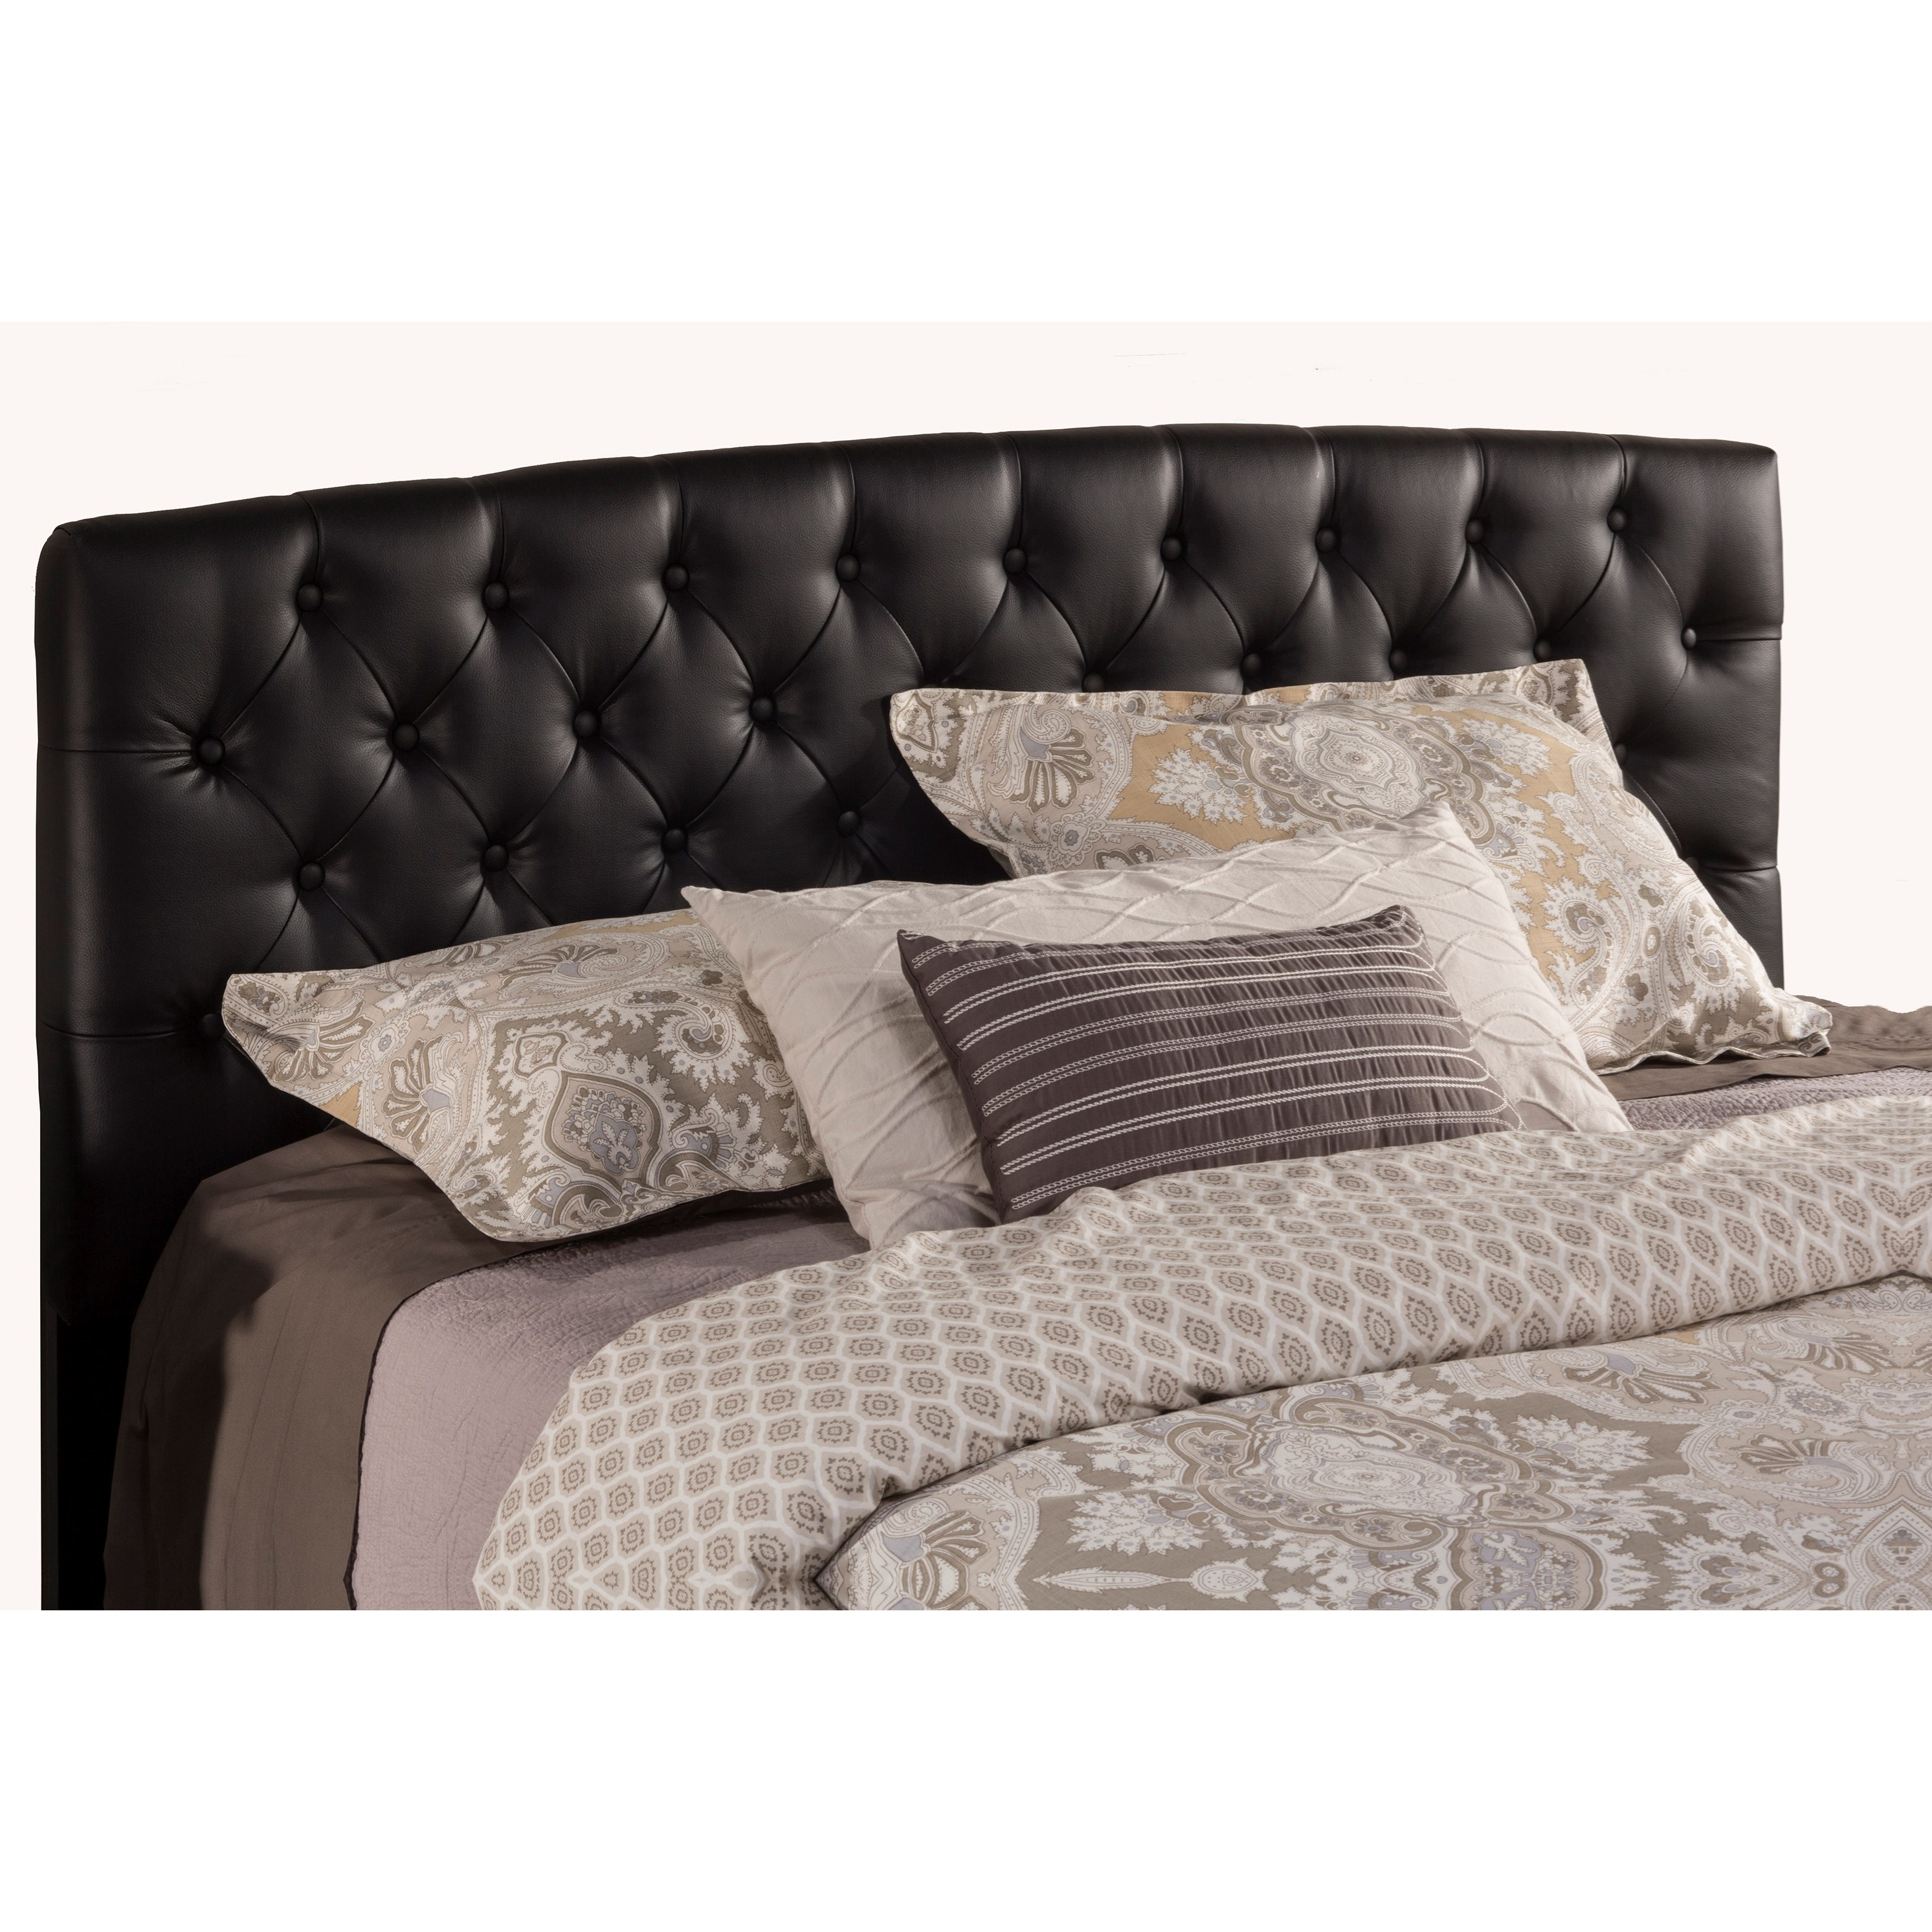 Upholstered Beds King/Cal King Headboard at Ruby Gordon Home